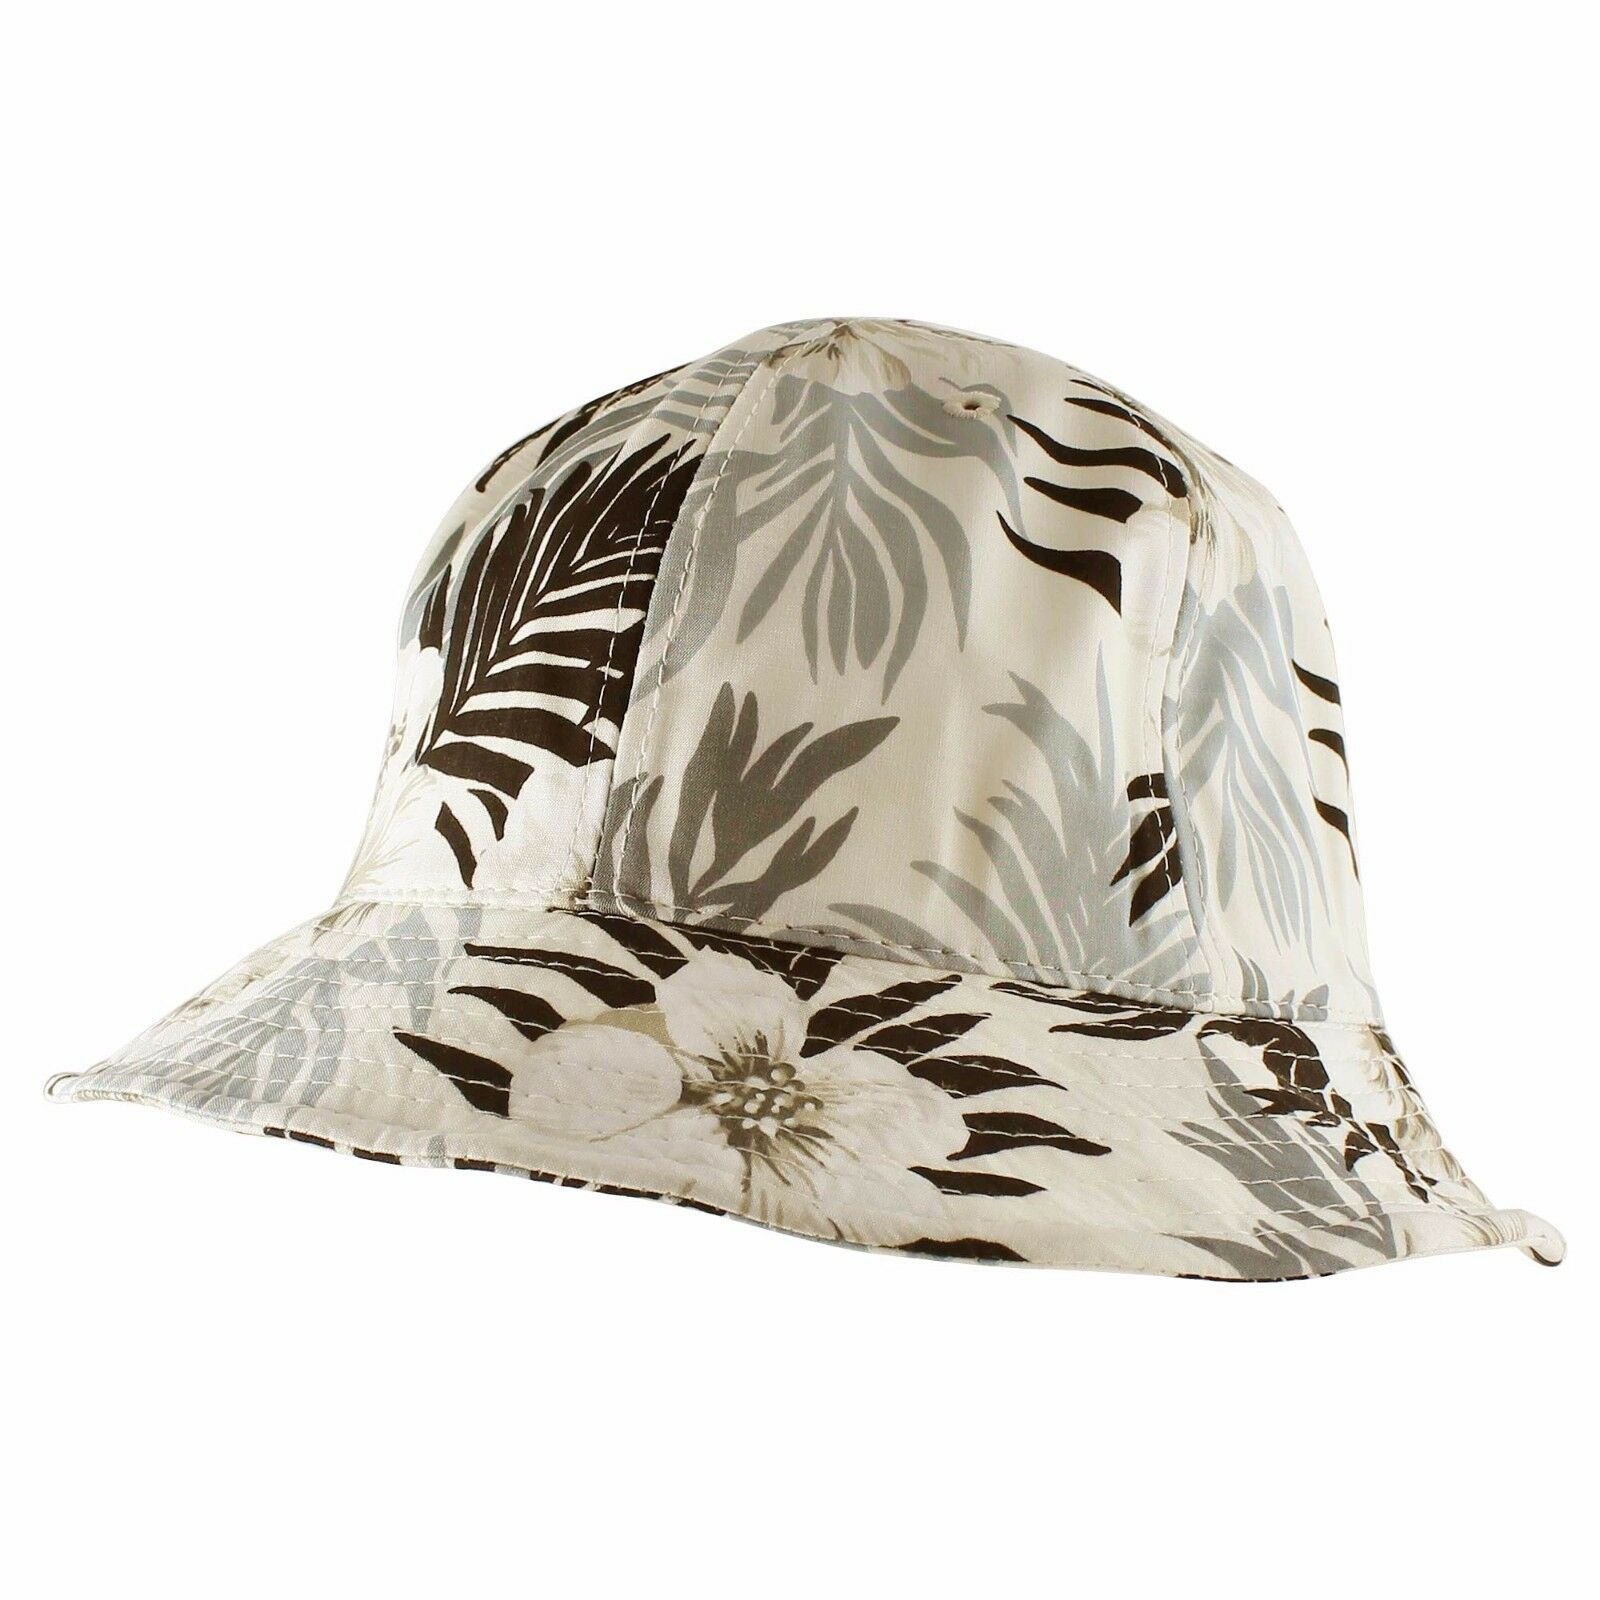 Tropical Hawaii Women Cotton Hiking Fishing Beach Sun Bucket Hat Women Hawaii Men Year Round 129f44